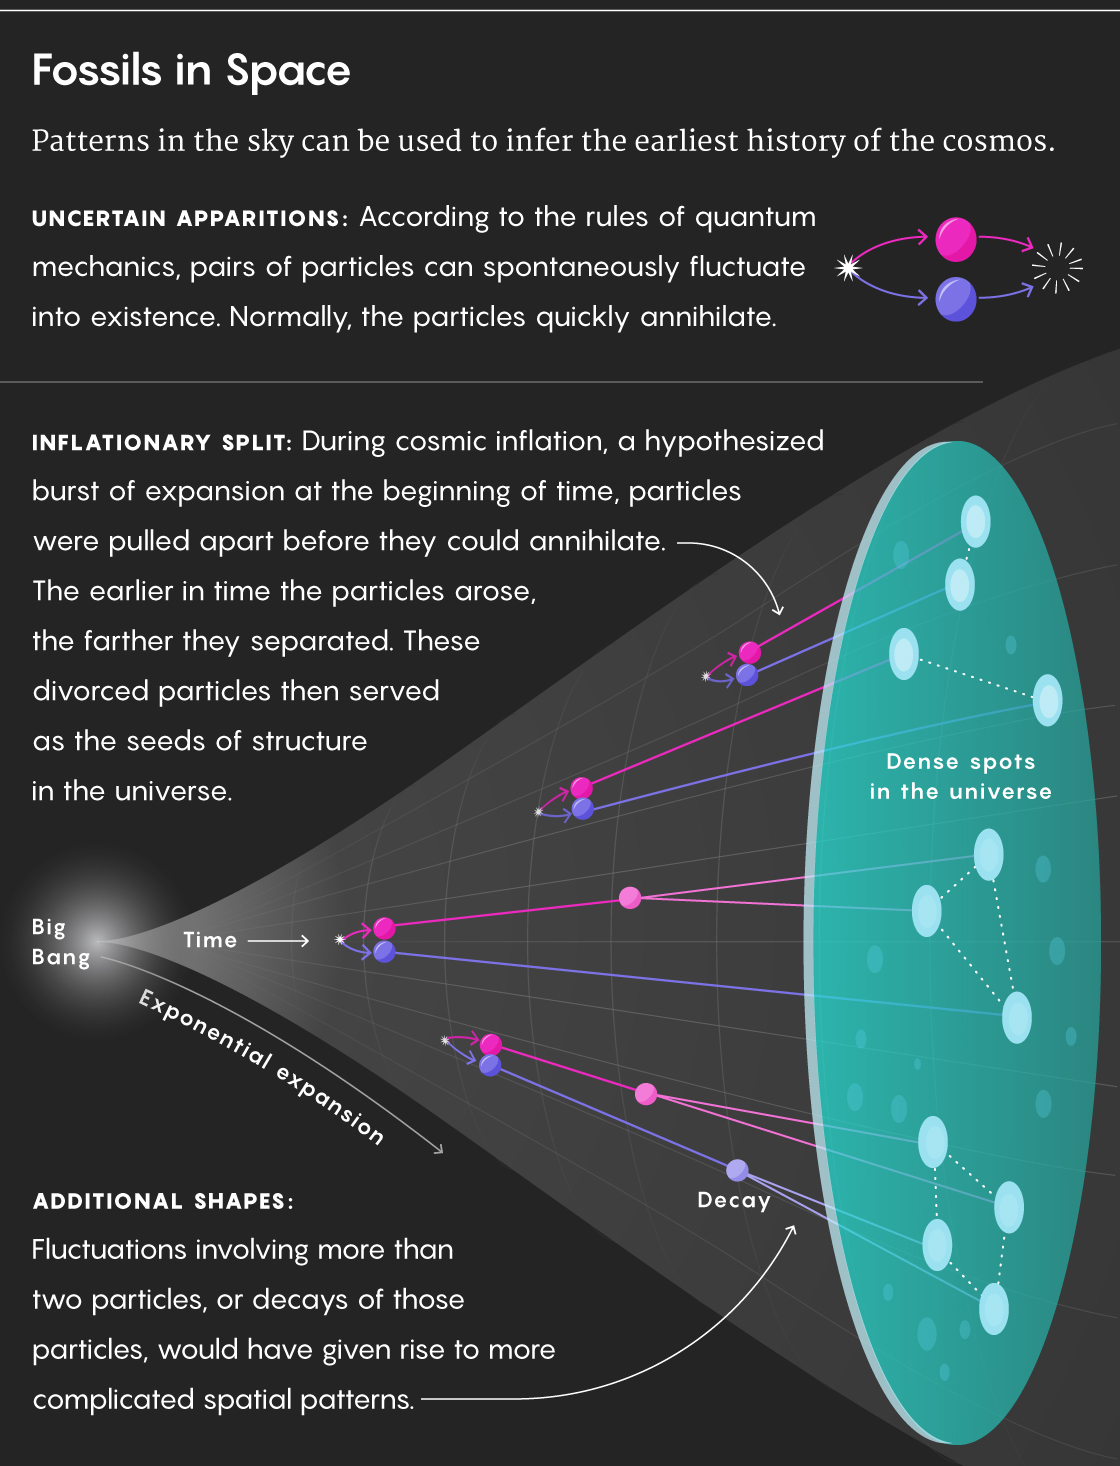 """Infographic titled """"Fossils in Space"""". Patterns in the sky can be used to infer the earliest history of the cosmos. UNCERTAIN APPARITIONS: According to the rules of quantum mechanics, pairs of particles can spontaneously fluctuate into existence. Normally, the particles quickly annihilate. INFLATIONARY SPLIT: During cosmic inflation, a hypothesized burst of expansion at the beginning of time, particles were pulled apart before they could annihilate. The earlier in time the particles arose, the farther they separated. These divorced particles then served as the seeds of structure in the universe. ADDITIONAL SHAPES: Fluctuations involving more than two particles, or decays of those particles, would have given rise to more complicated spatial patterns."""